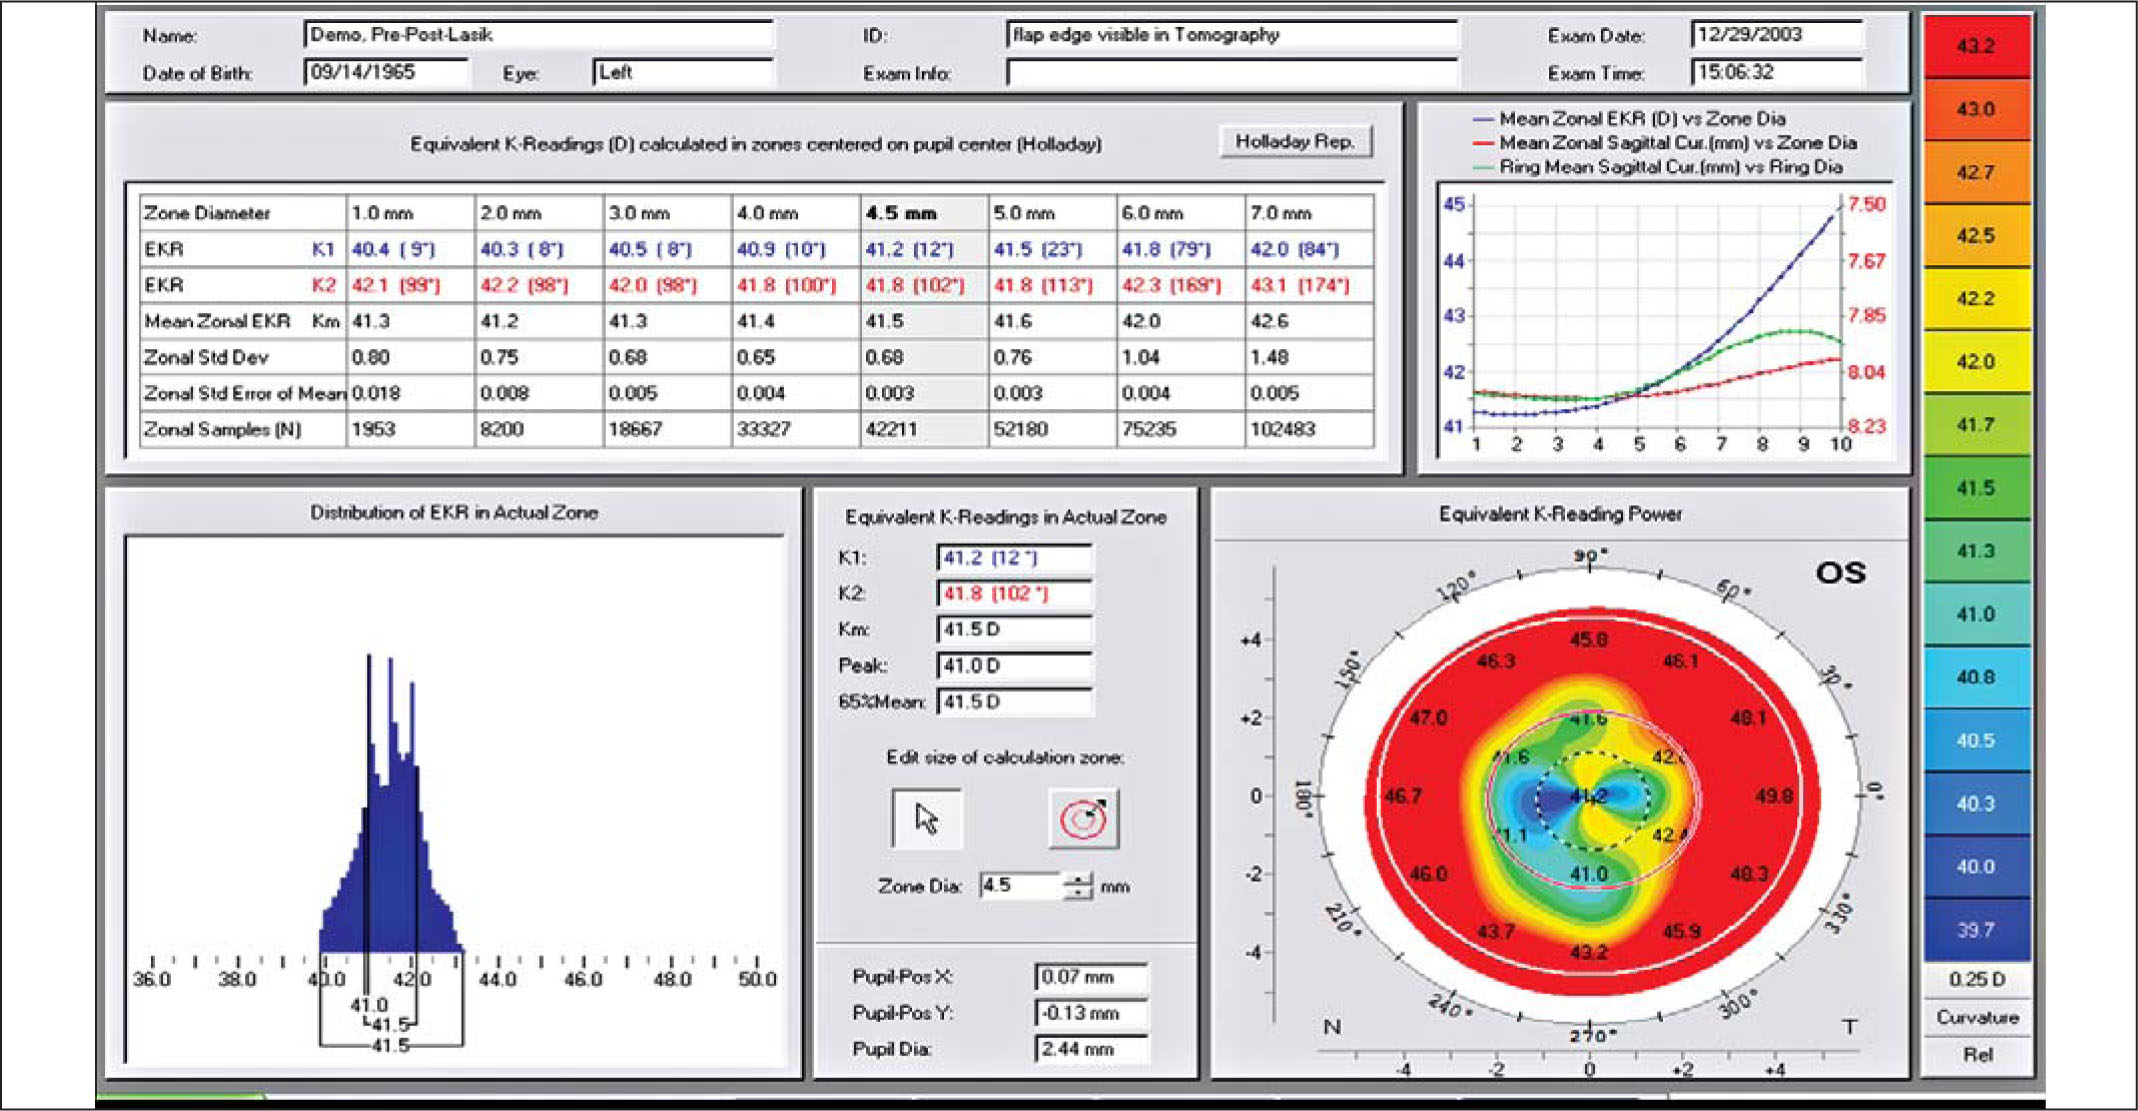 Detailed Report of the Equivalent K-Reading (EKR) for an Example LASIK Eye. The Mean Zonal Value Is Shown in the Table in the Gray Shaded Central Column Under the 4.5-mm Zone. There Are ~42,000 Points Used to Determine the Mean Value. the Frequency Distribution of Powers over the 4.5-mm Zone Is Shown in the Lower Left Hand Corner. Note the Smaller Variation in the Distribution of the EKR Values (3.30 D, 39.90 to 43.20 D) over the 4.5-mm Zone for the LASIK Versus the RK Eye. The Mean Zonal EKR (D) (dashed Blue Line) Versus the Zone Diameter Is Shown Graphically in the Upper Right Hand Corner.